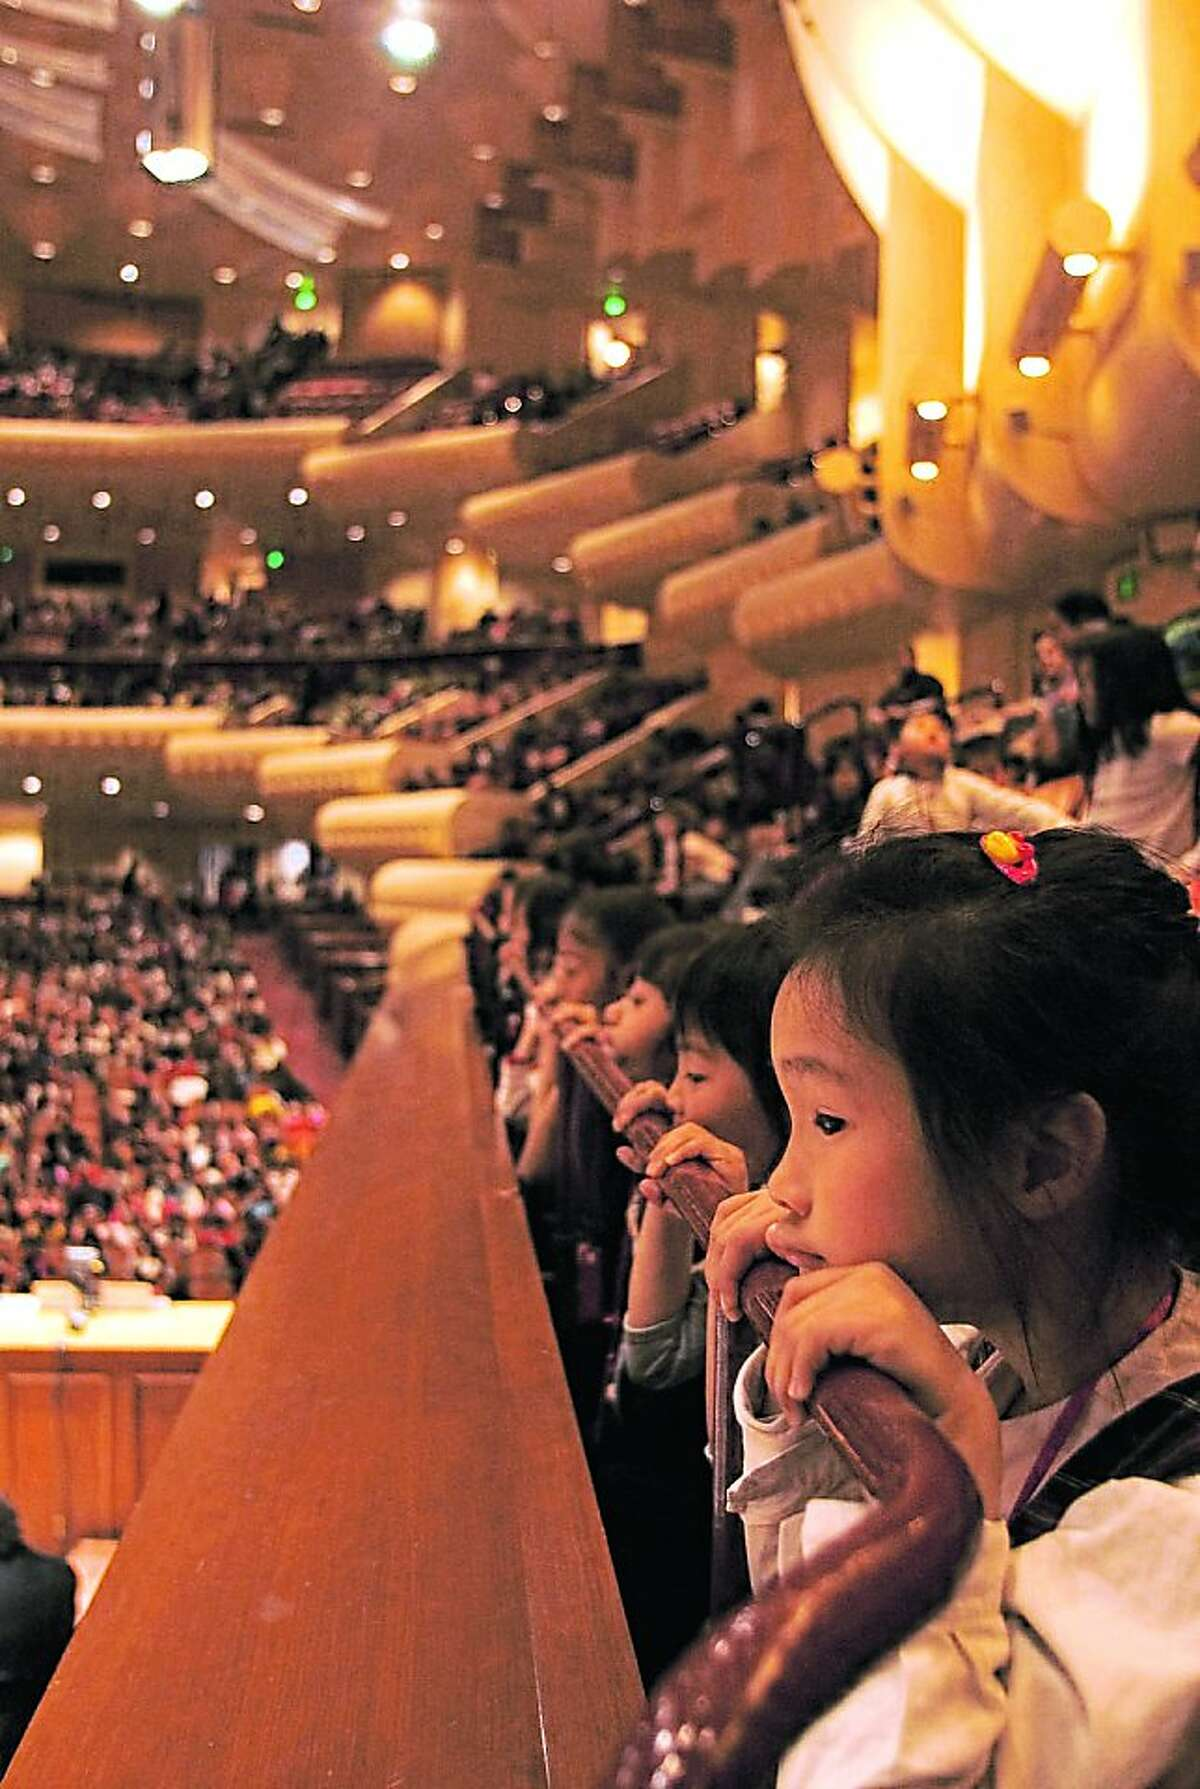 Music for all/education: Children enjoy a free SF Symphony performance as part of their Adventures in Music program.